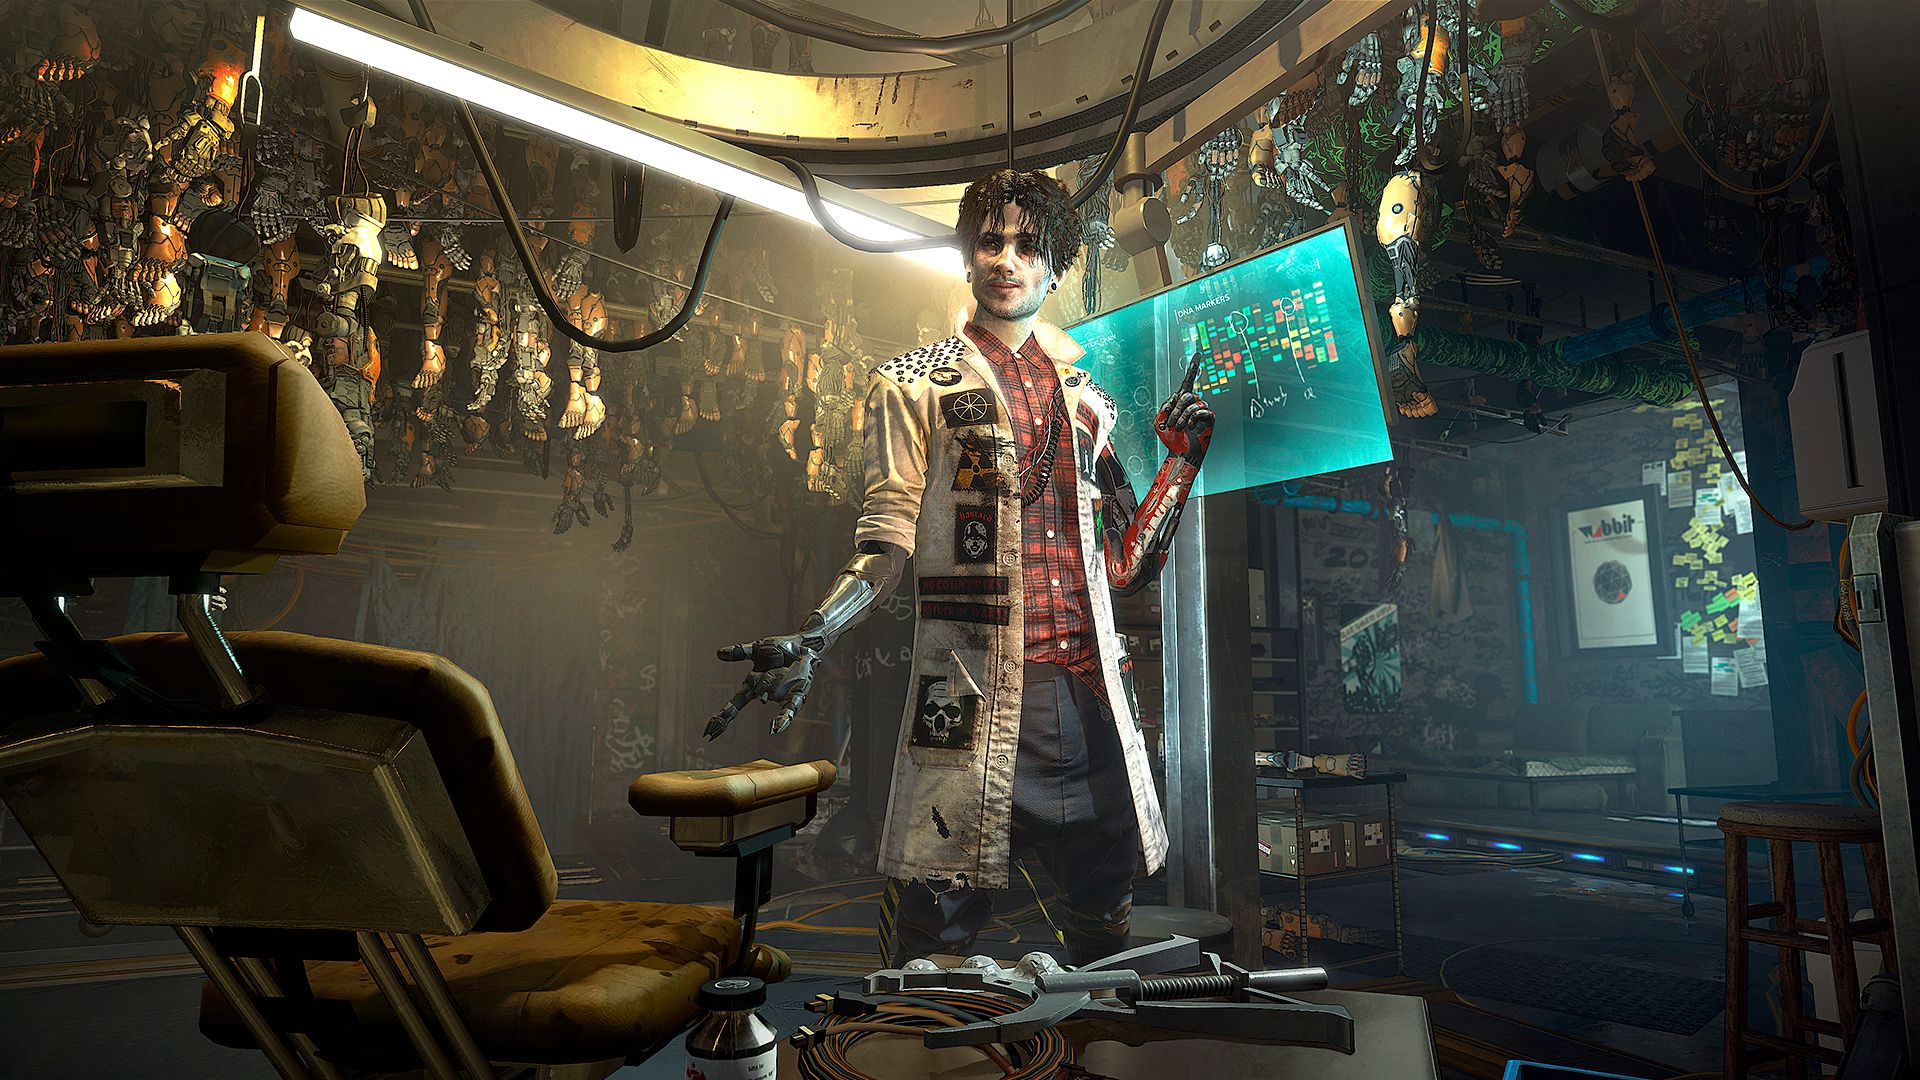 A screenshot of Vaclav, an underground augmentation specialist from Deus Ex: Mankind Divided.